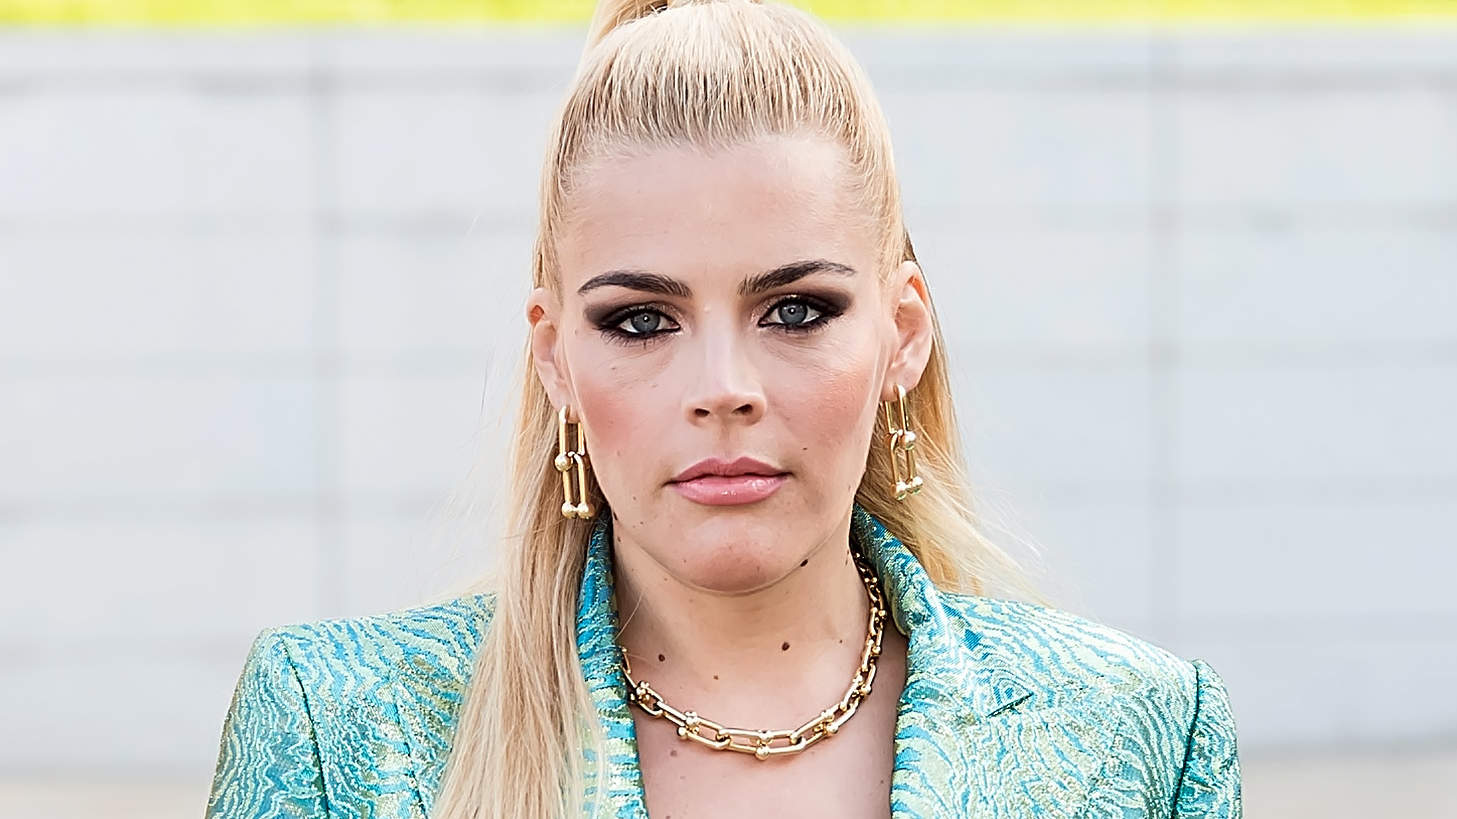 Busy Philipps Opens Up About Having an Abortion at 15: 'Every Woman Deserves Compassion and Care'